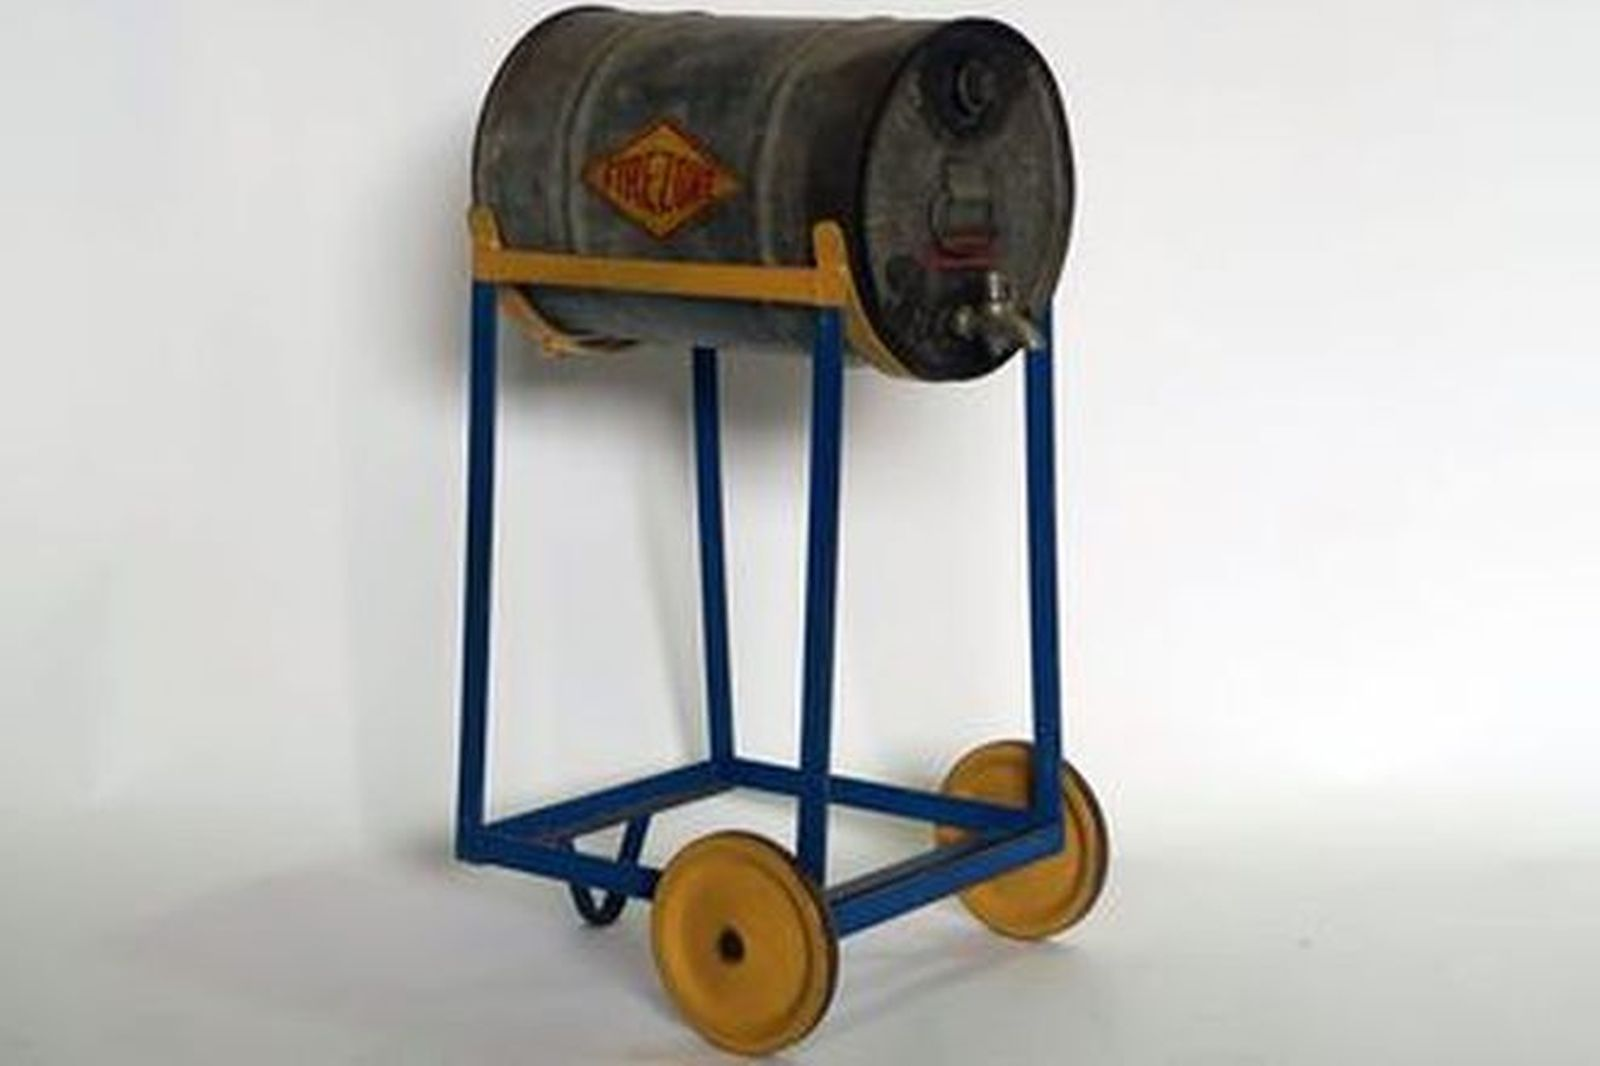 Oil Drum - Firezone 8 Gallon Galvanised on Sleigh Trolley